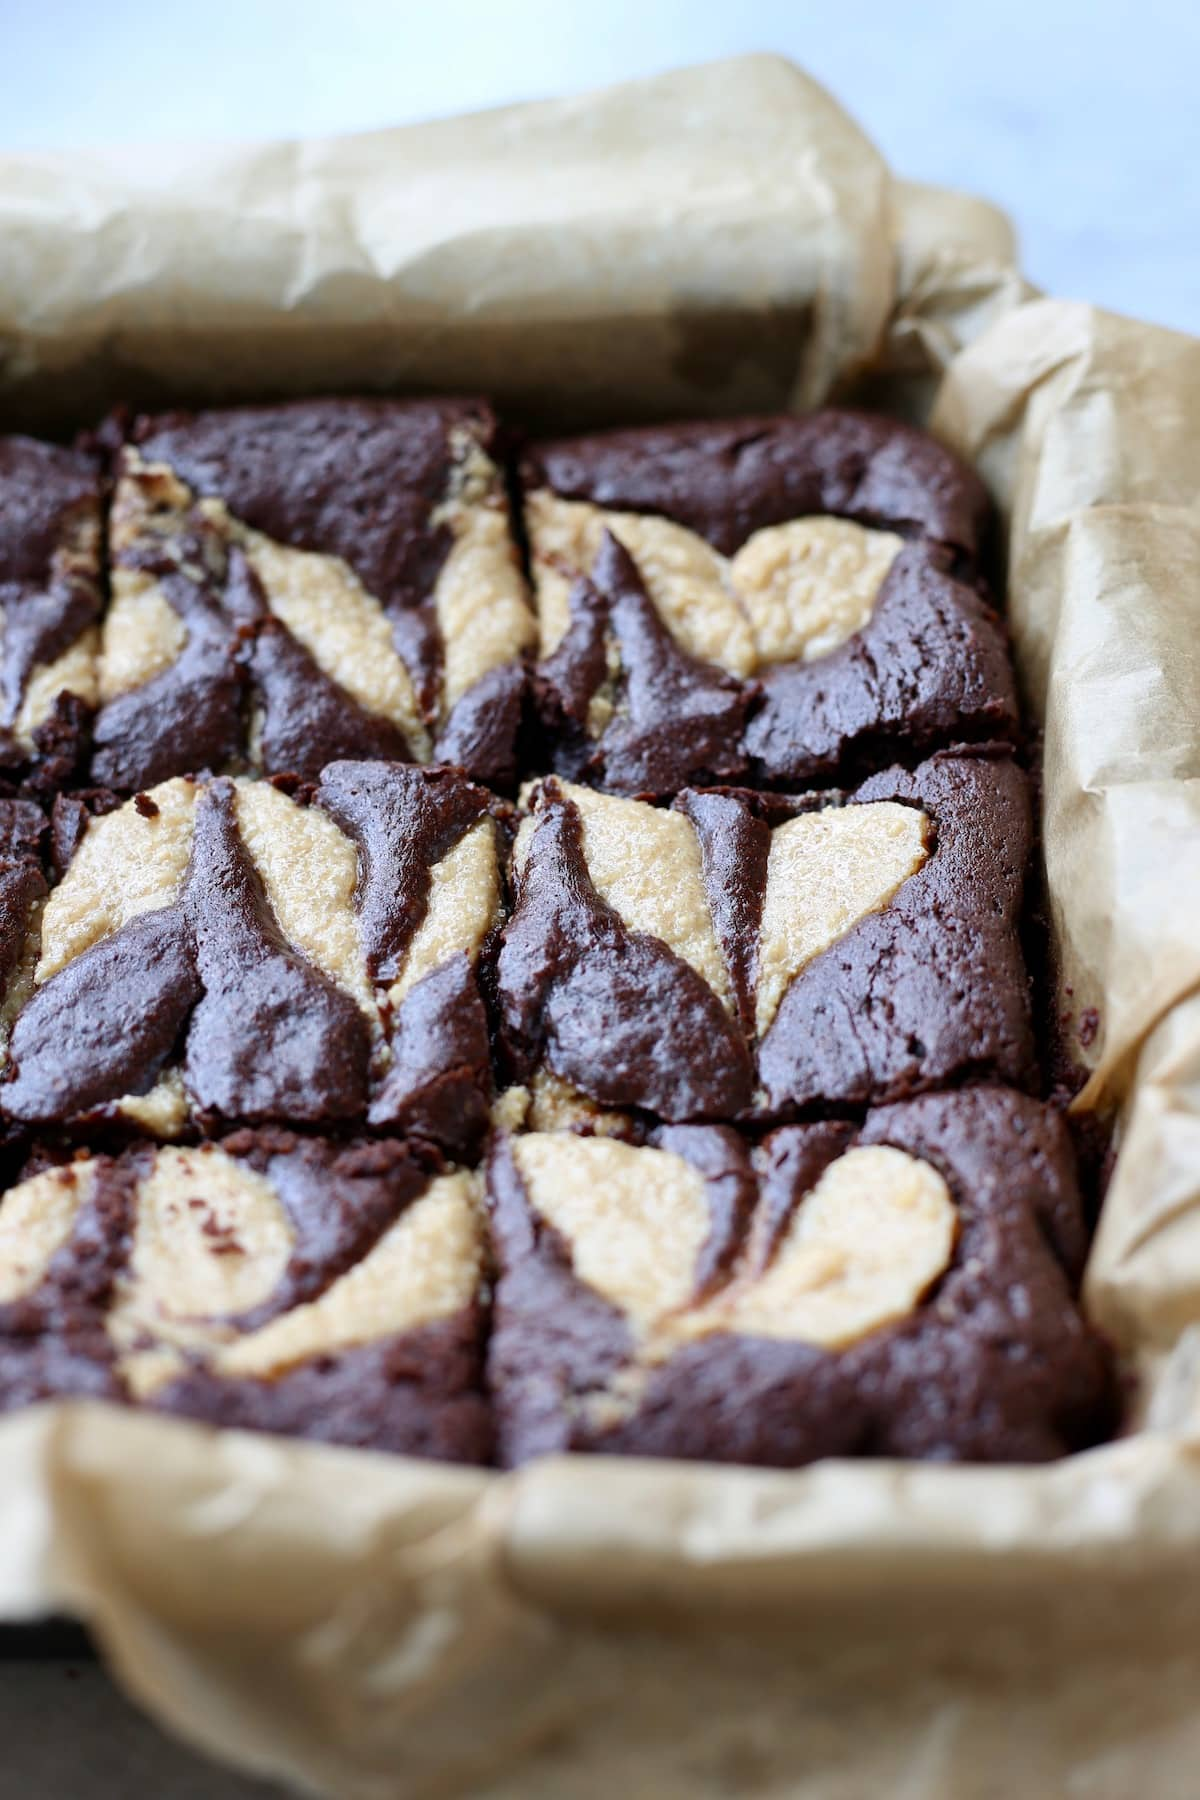 peanut butter brownies in a parchment paper lined baking tray